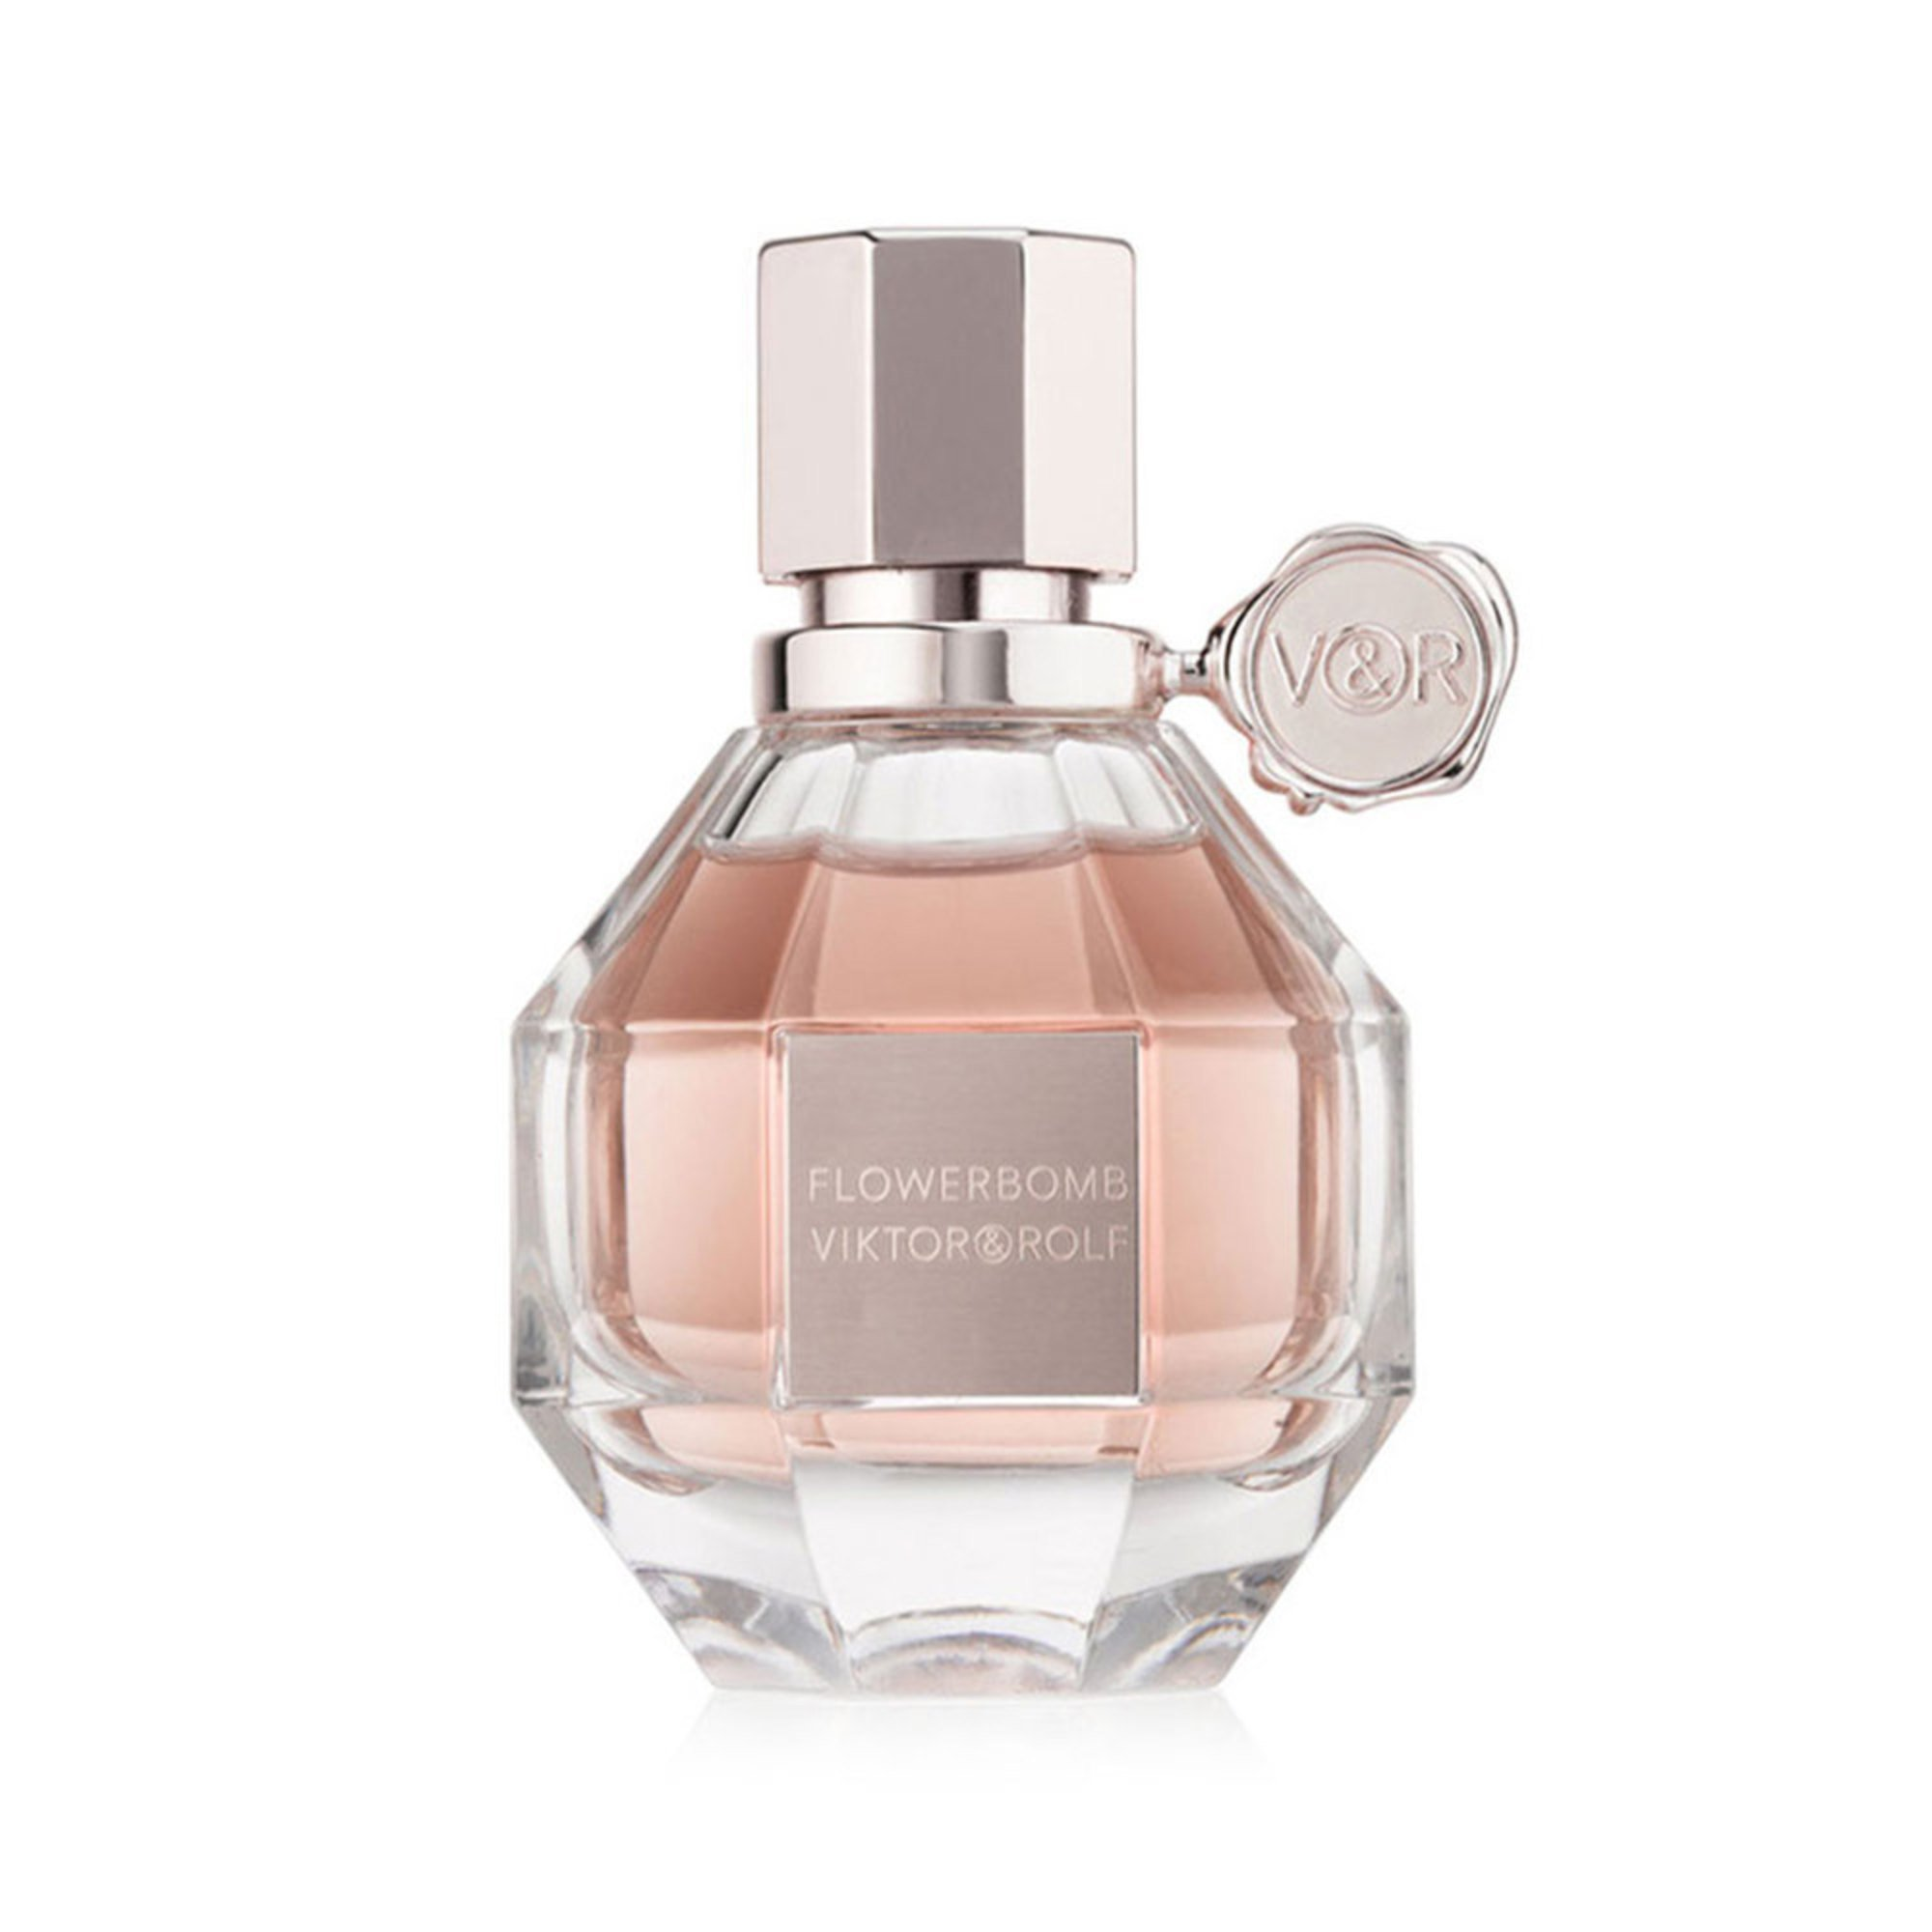 Trending Report on Fresh Scent Perfume Market 2019: Growth